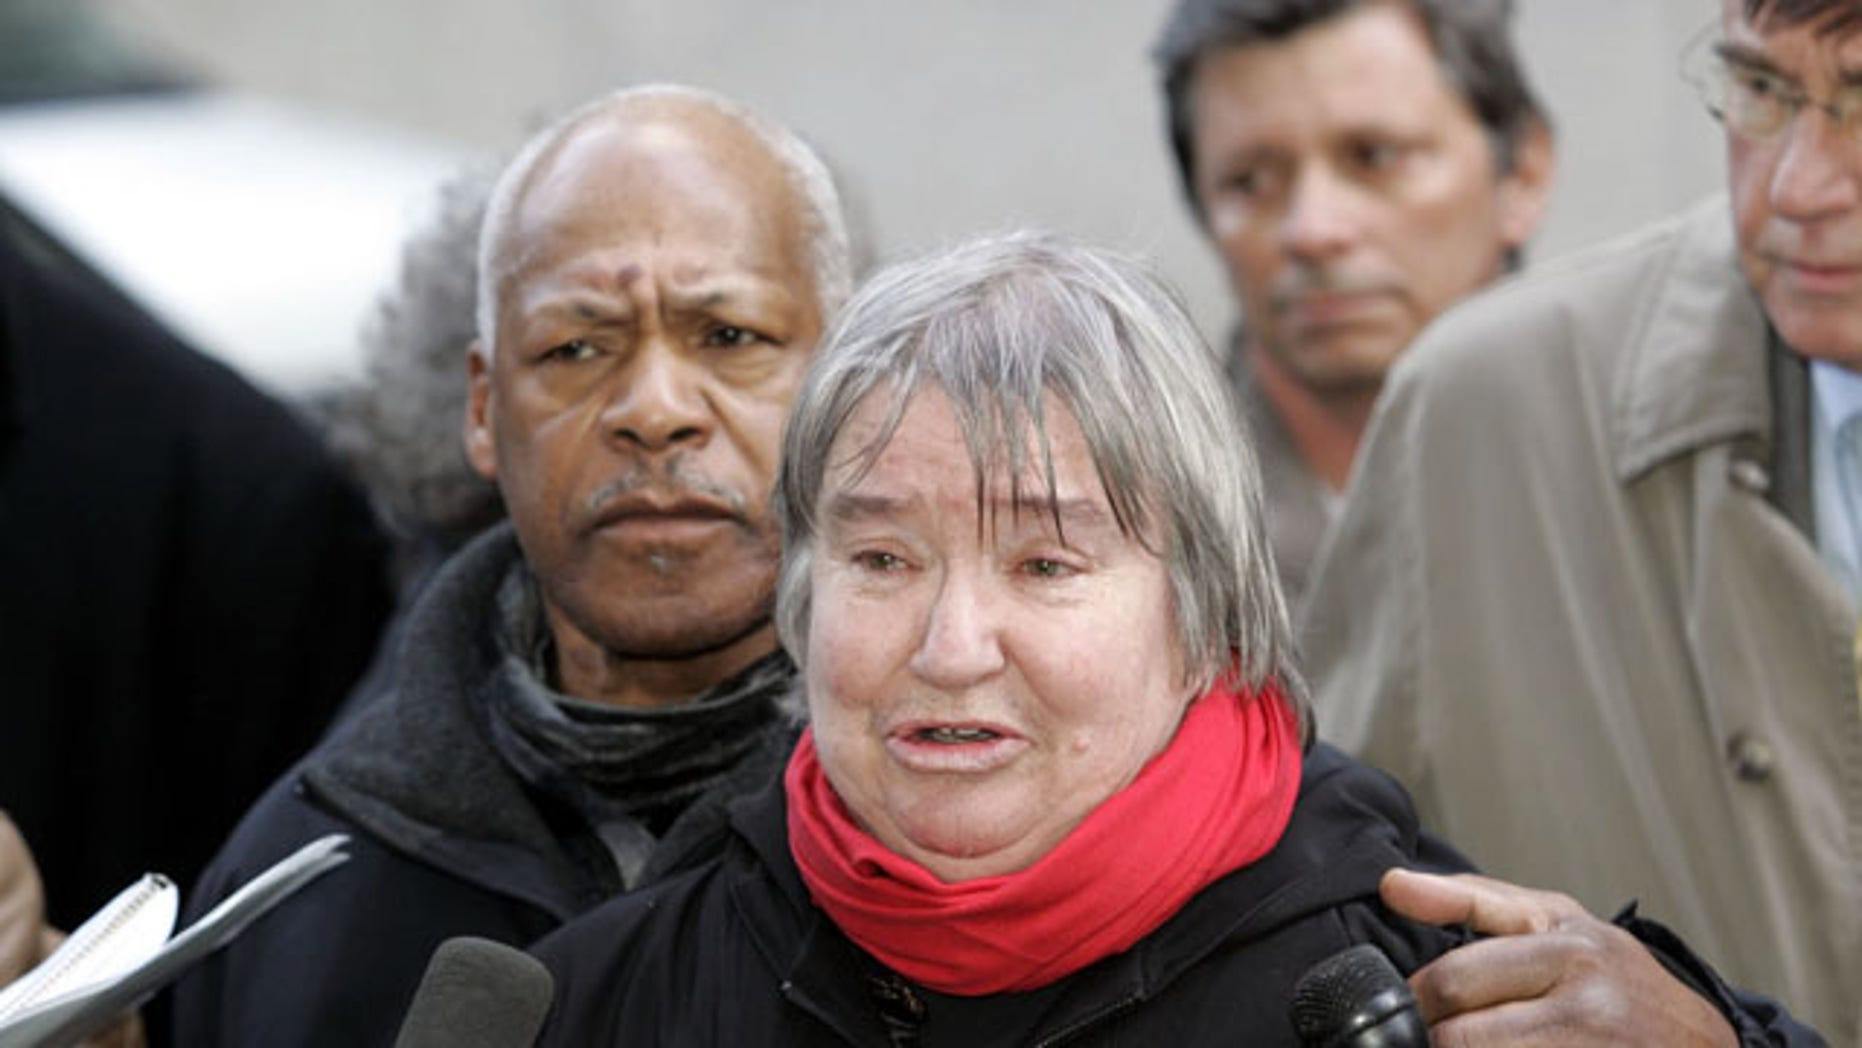 FILE - In this Feb. 10, 2005 file photo, attorney Lynne Stewart cries as she speaks to the press with her husband Ralph Pointer next to her, left, outside Federal Court in New York. Stewart, a former civil rights lawyer convicted in a terrorism case and sentenced to 10 years in prison is entitled to compassionate release because she has less than 18 months to live. (AP Photo)